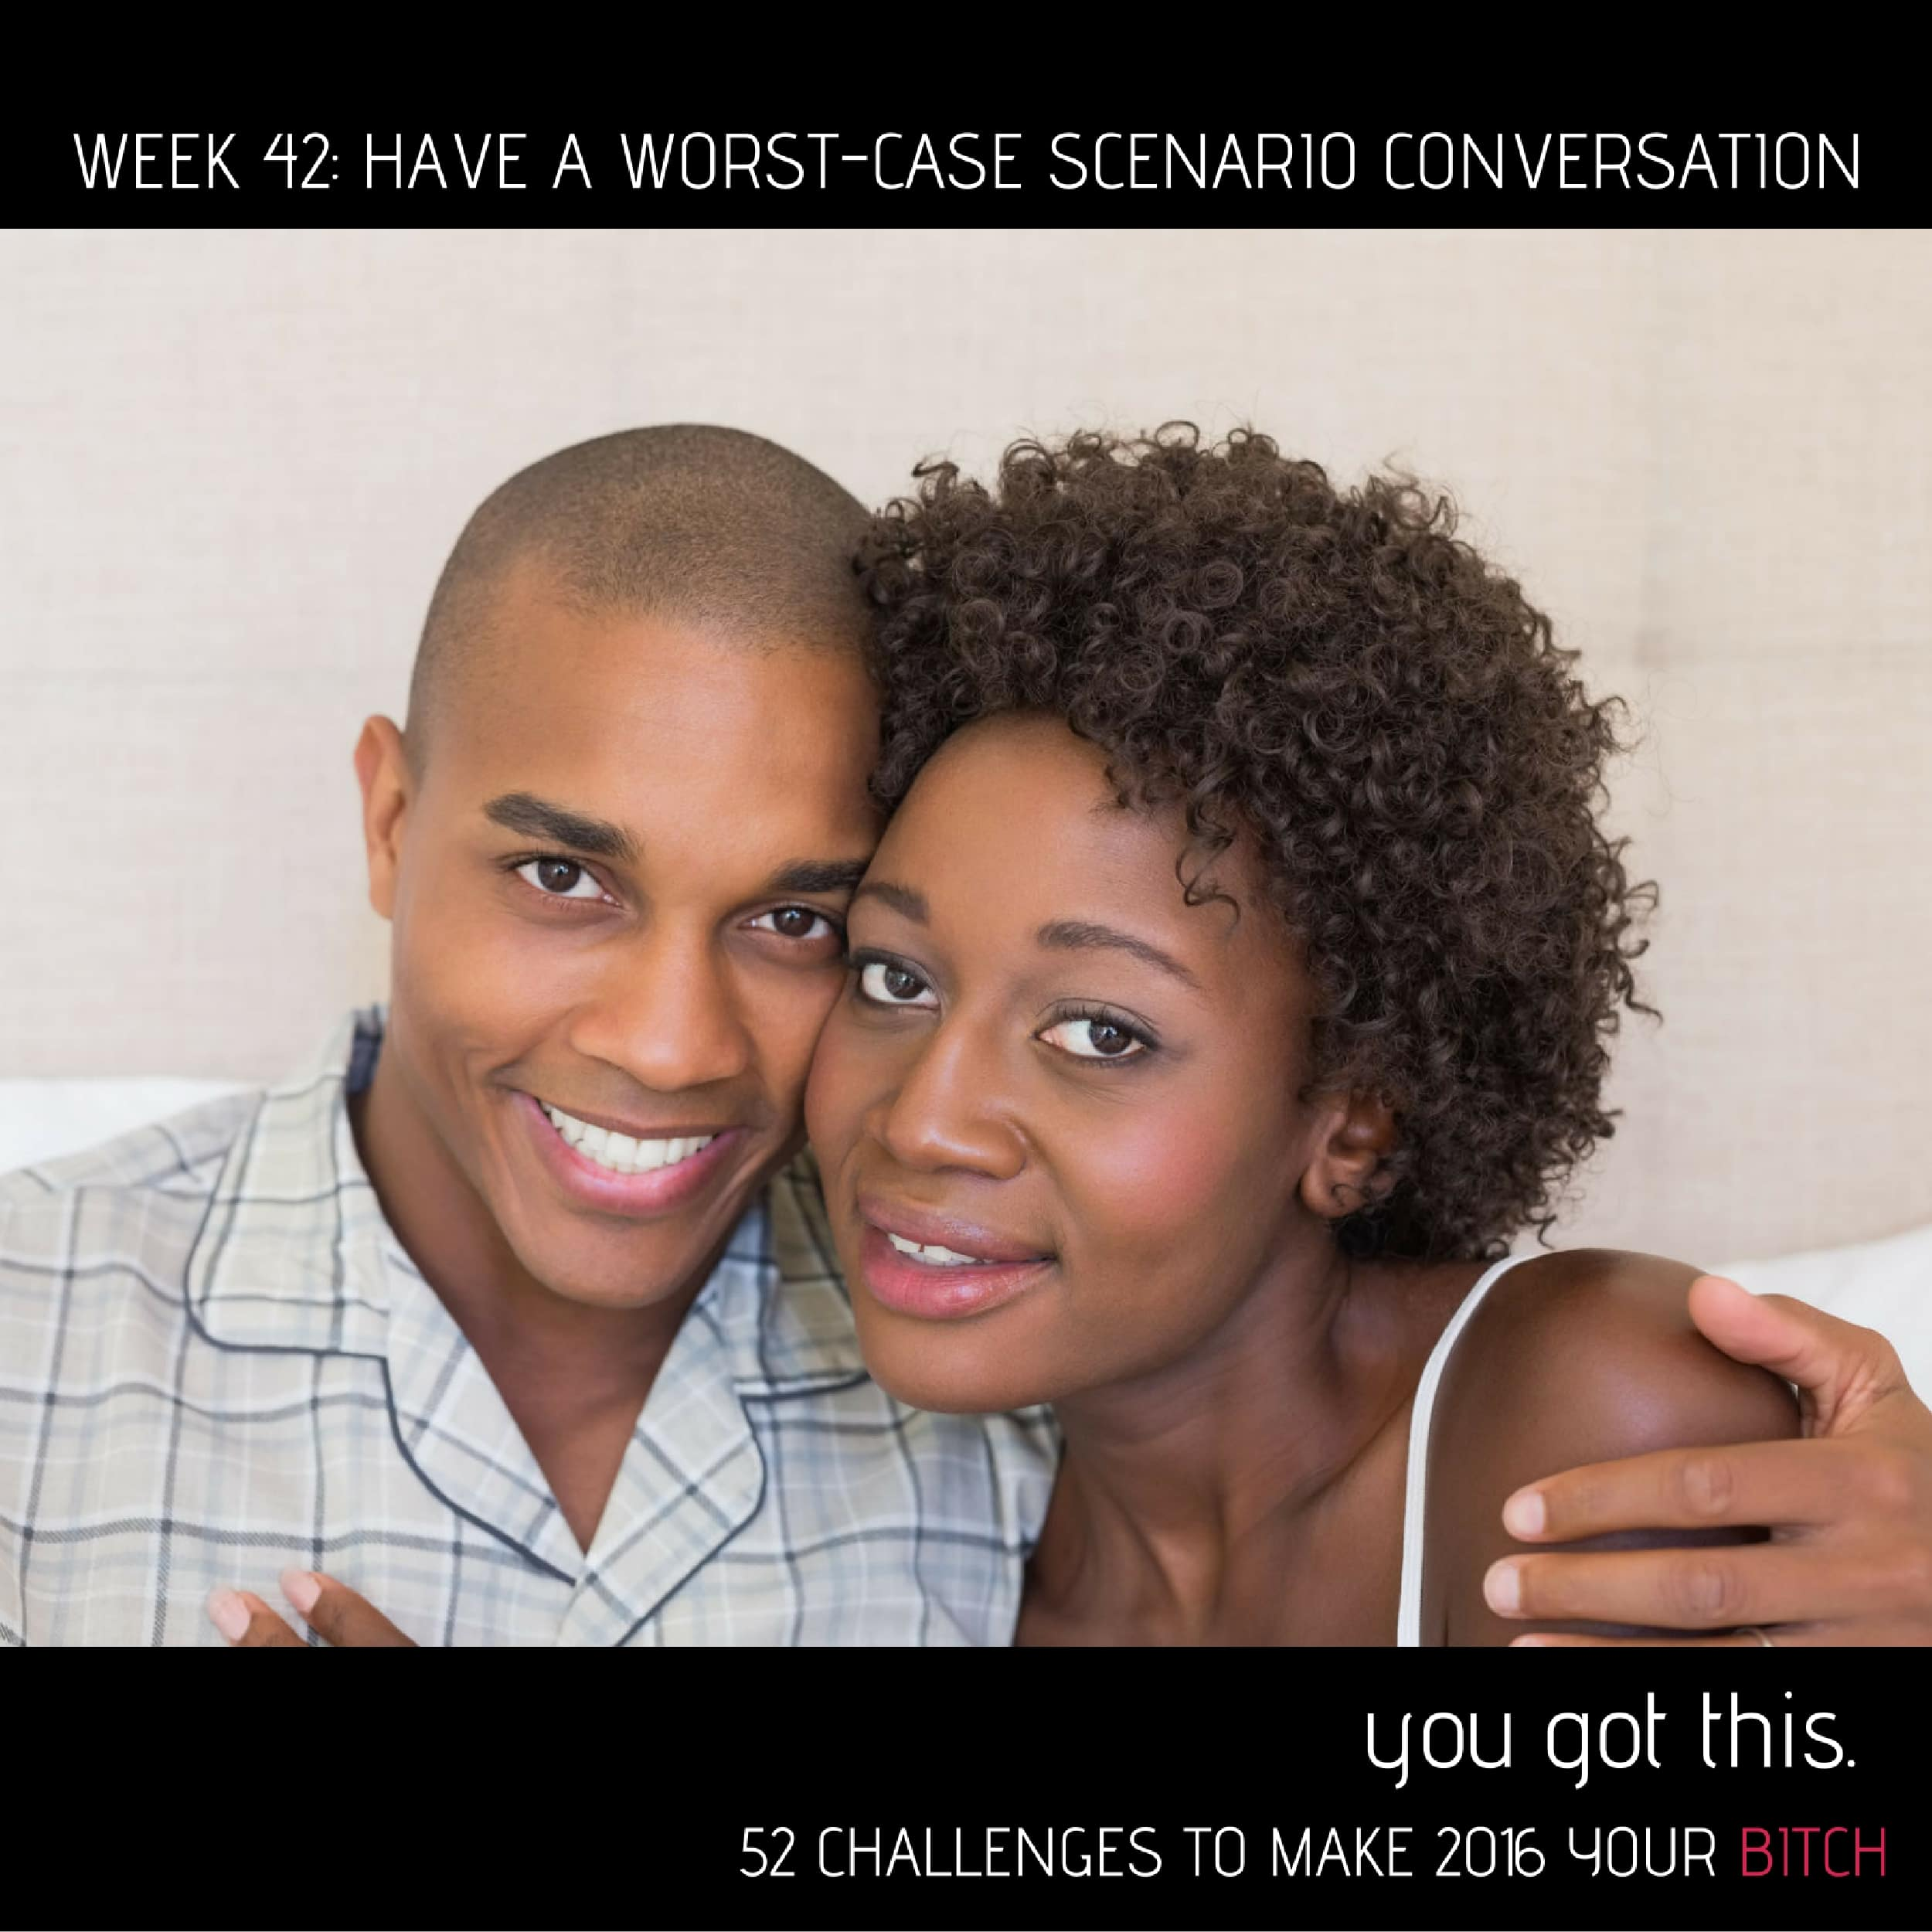 week-32-have-a-worst-case-scenario-conversation